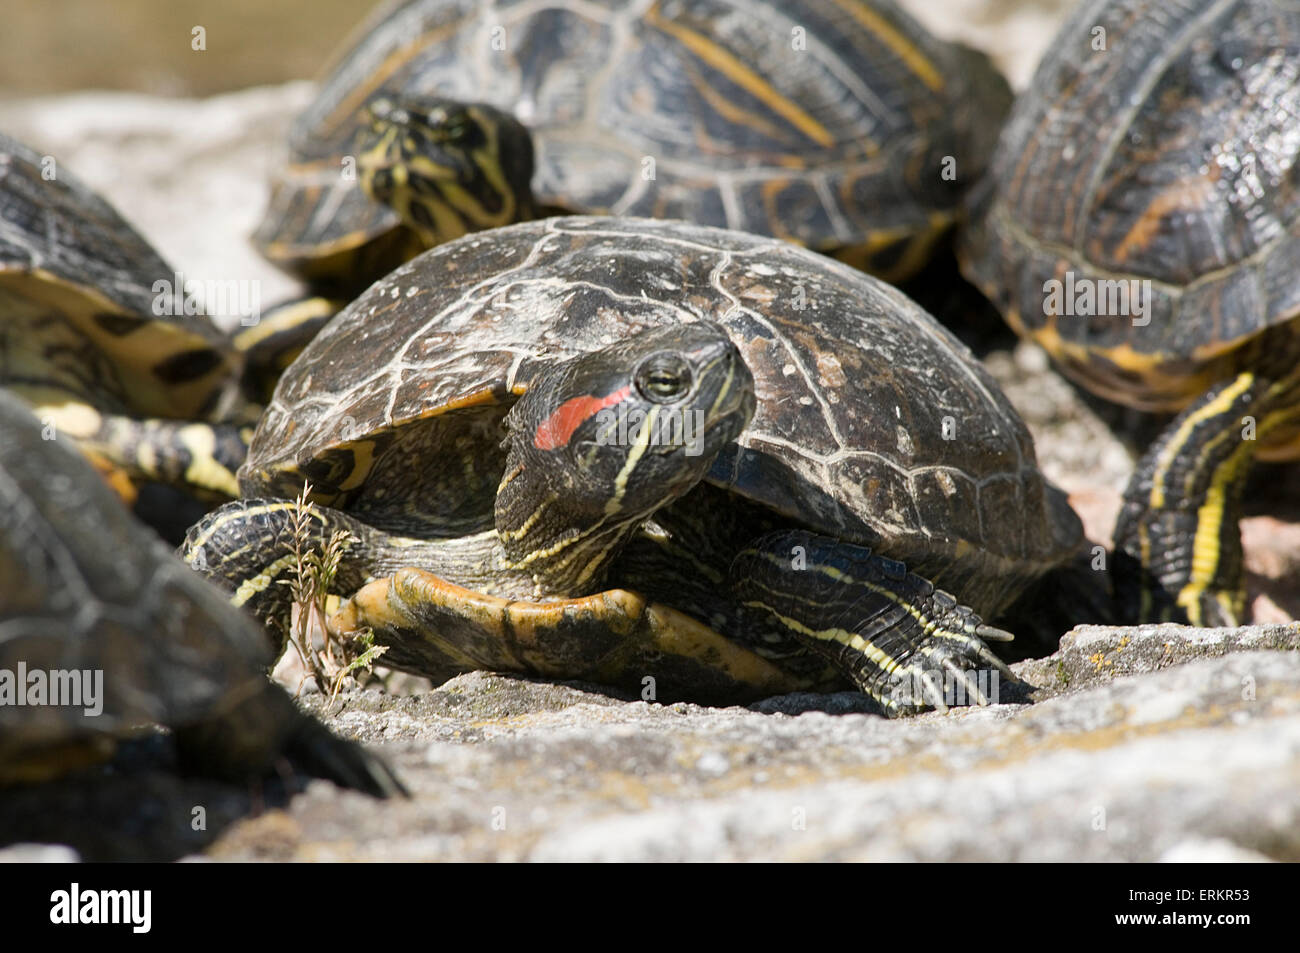 red eared terrapin terrapins basking warming up in the sun cold blooded  Emydidae sunbathing invasive species in - Stock Image